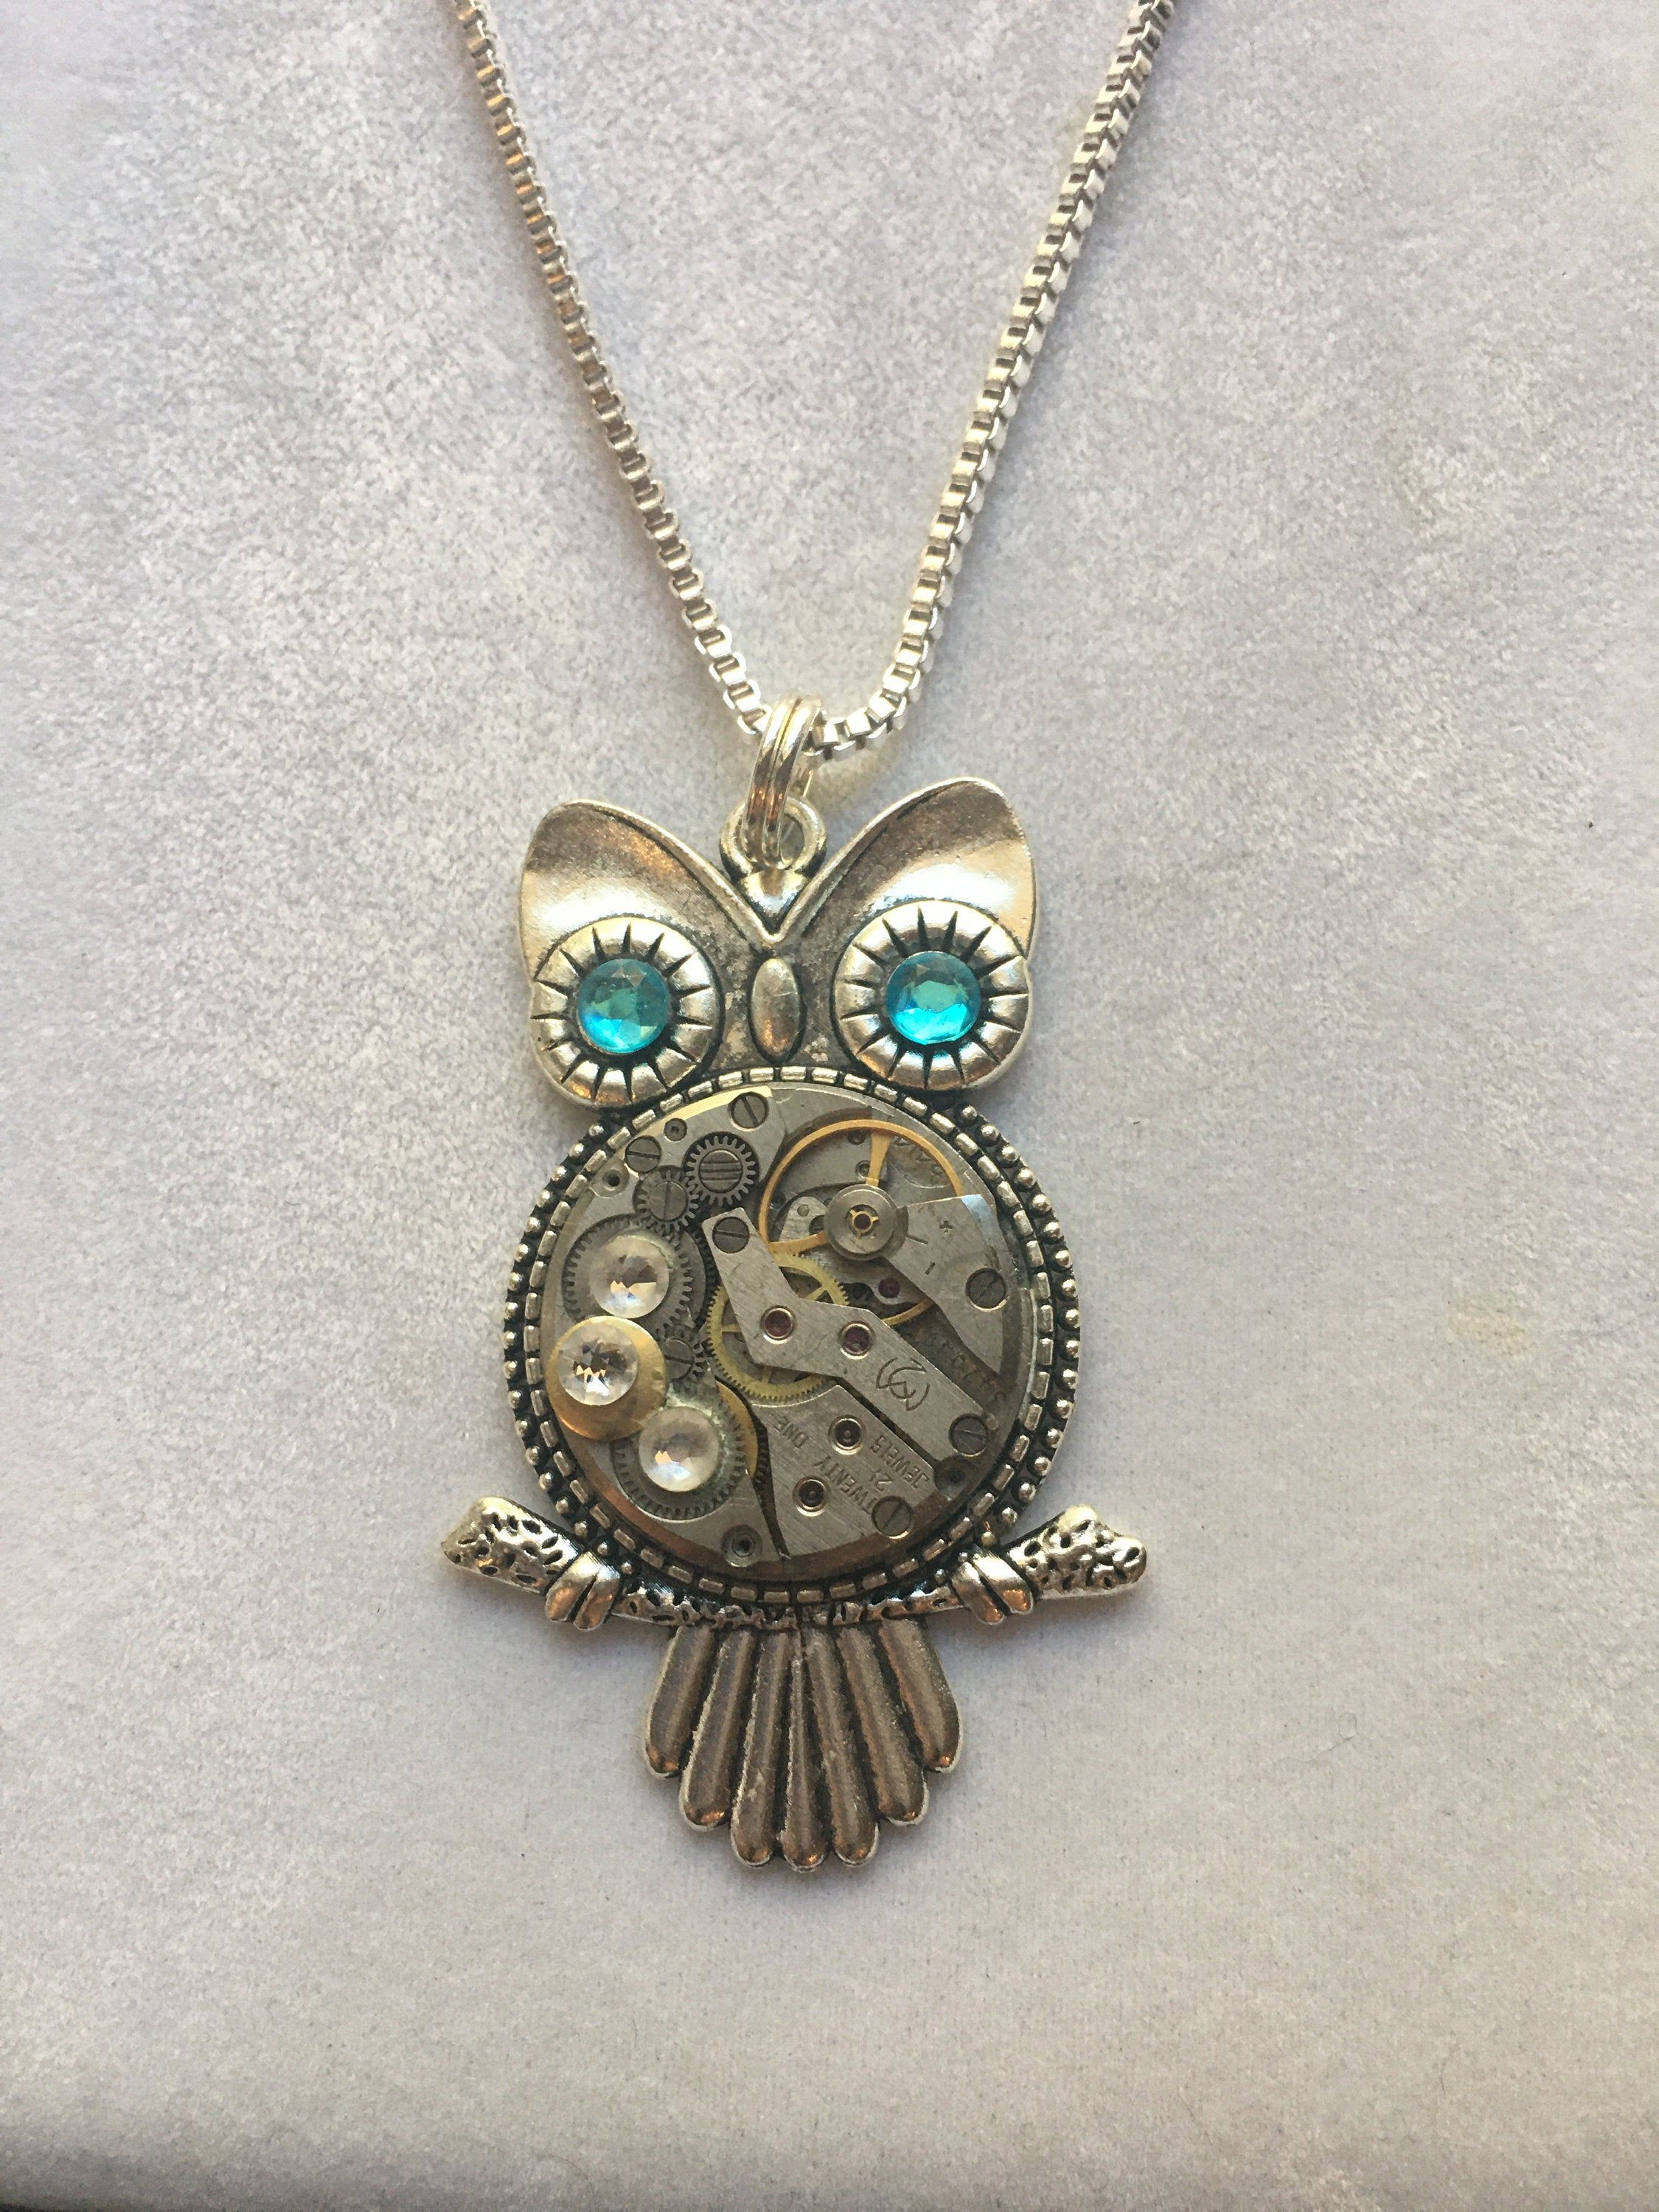 Owl Jewelry Son Daughter Two Tiny Birds Necklace Vintage Gold Owls Necklace Mother and Child Eco Friendly Owls Pendant